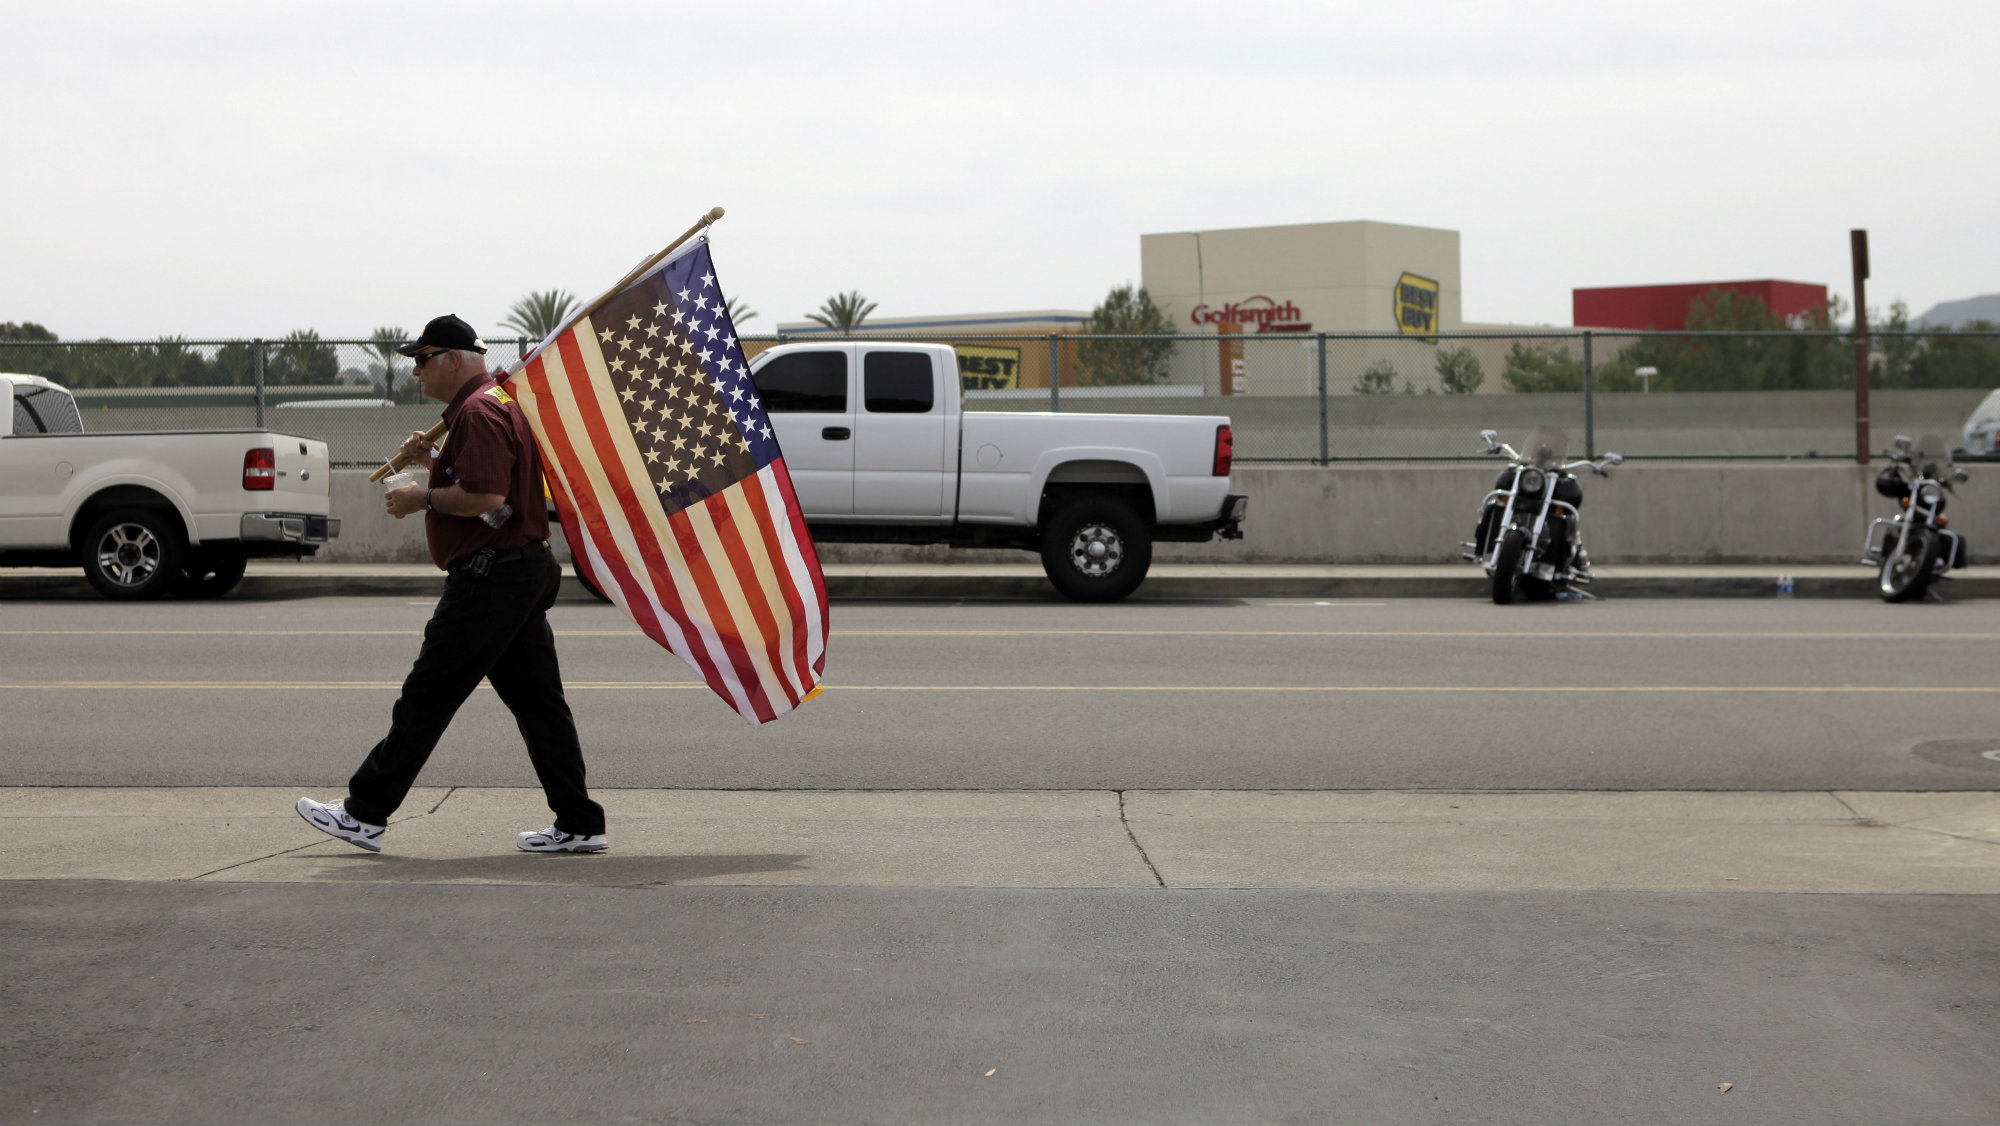 A man walks along the street with an American flag